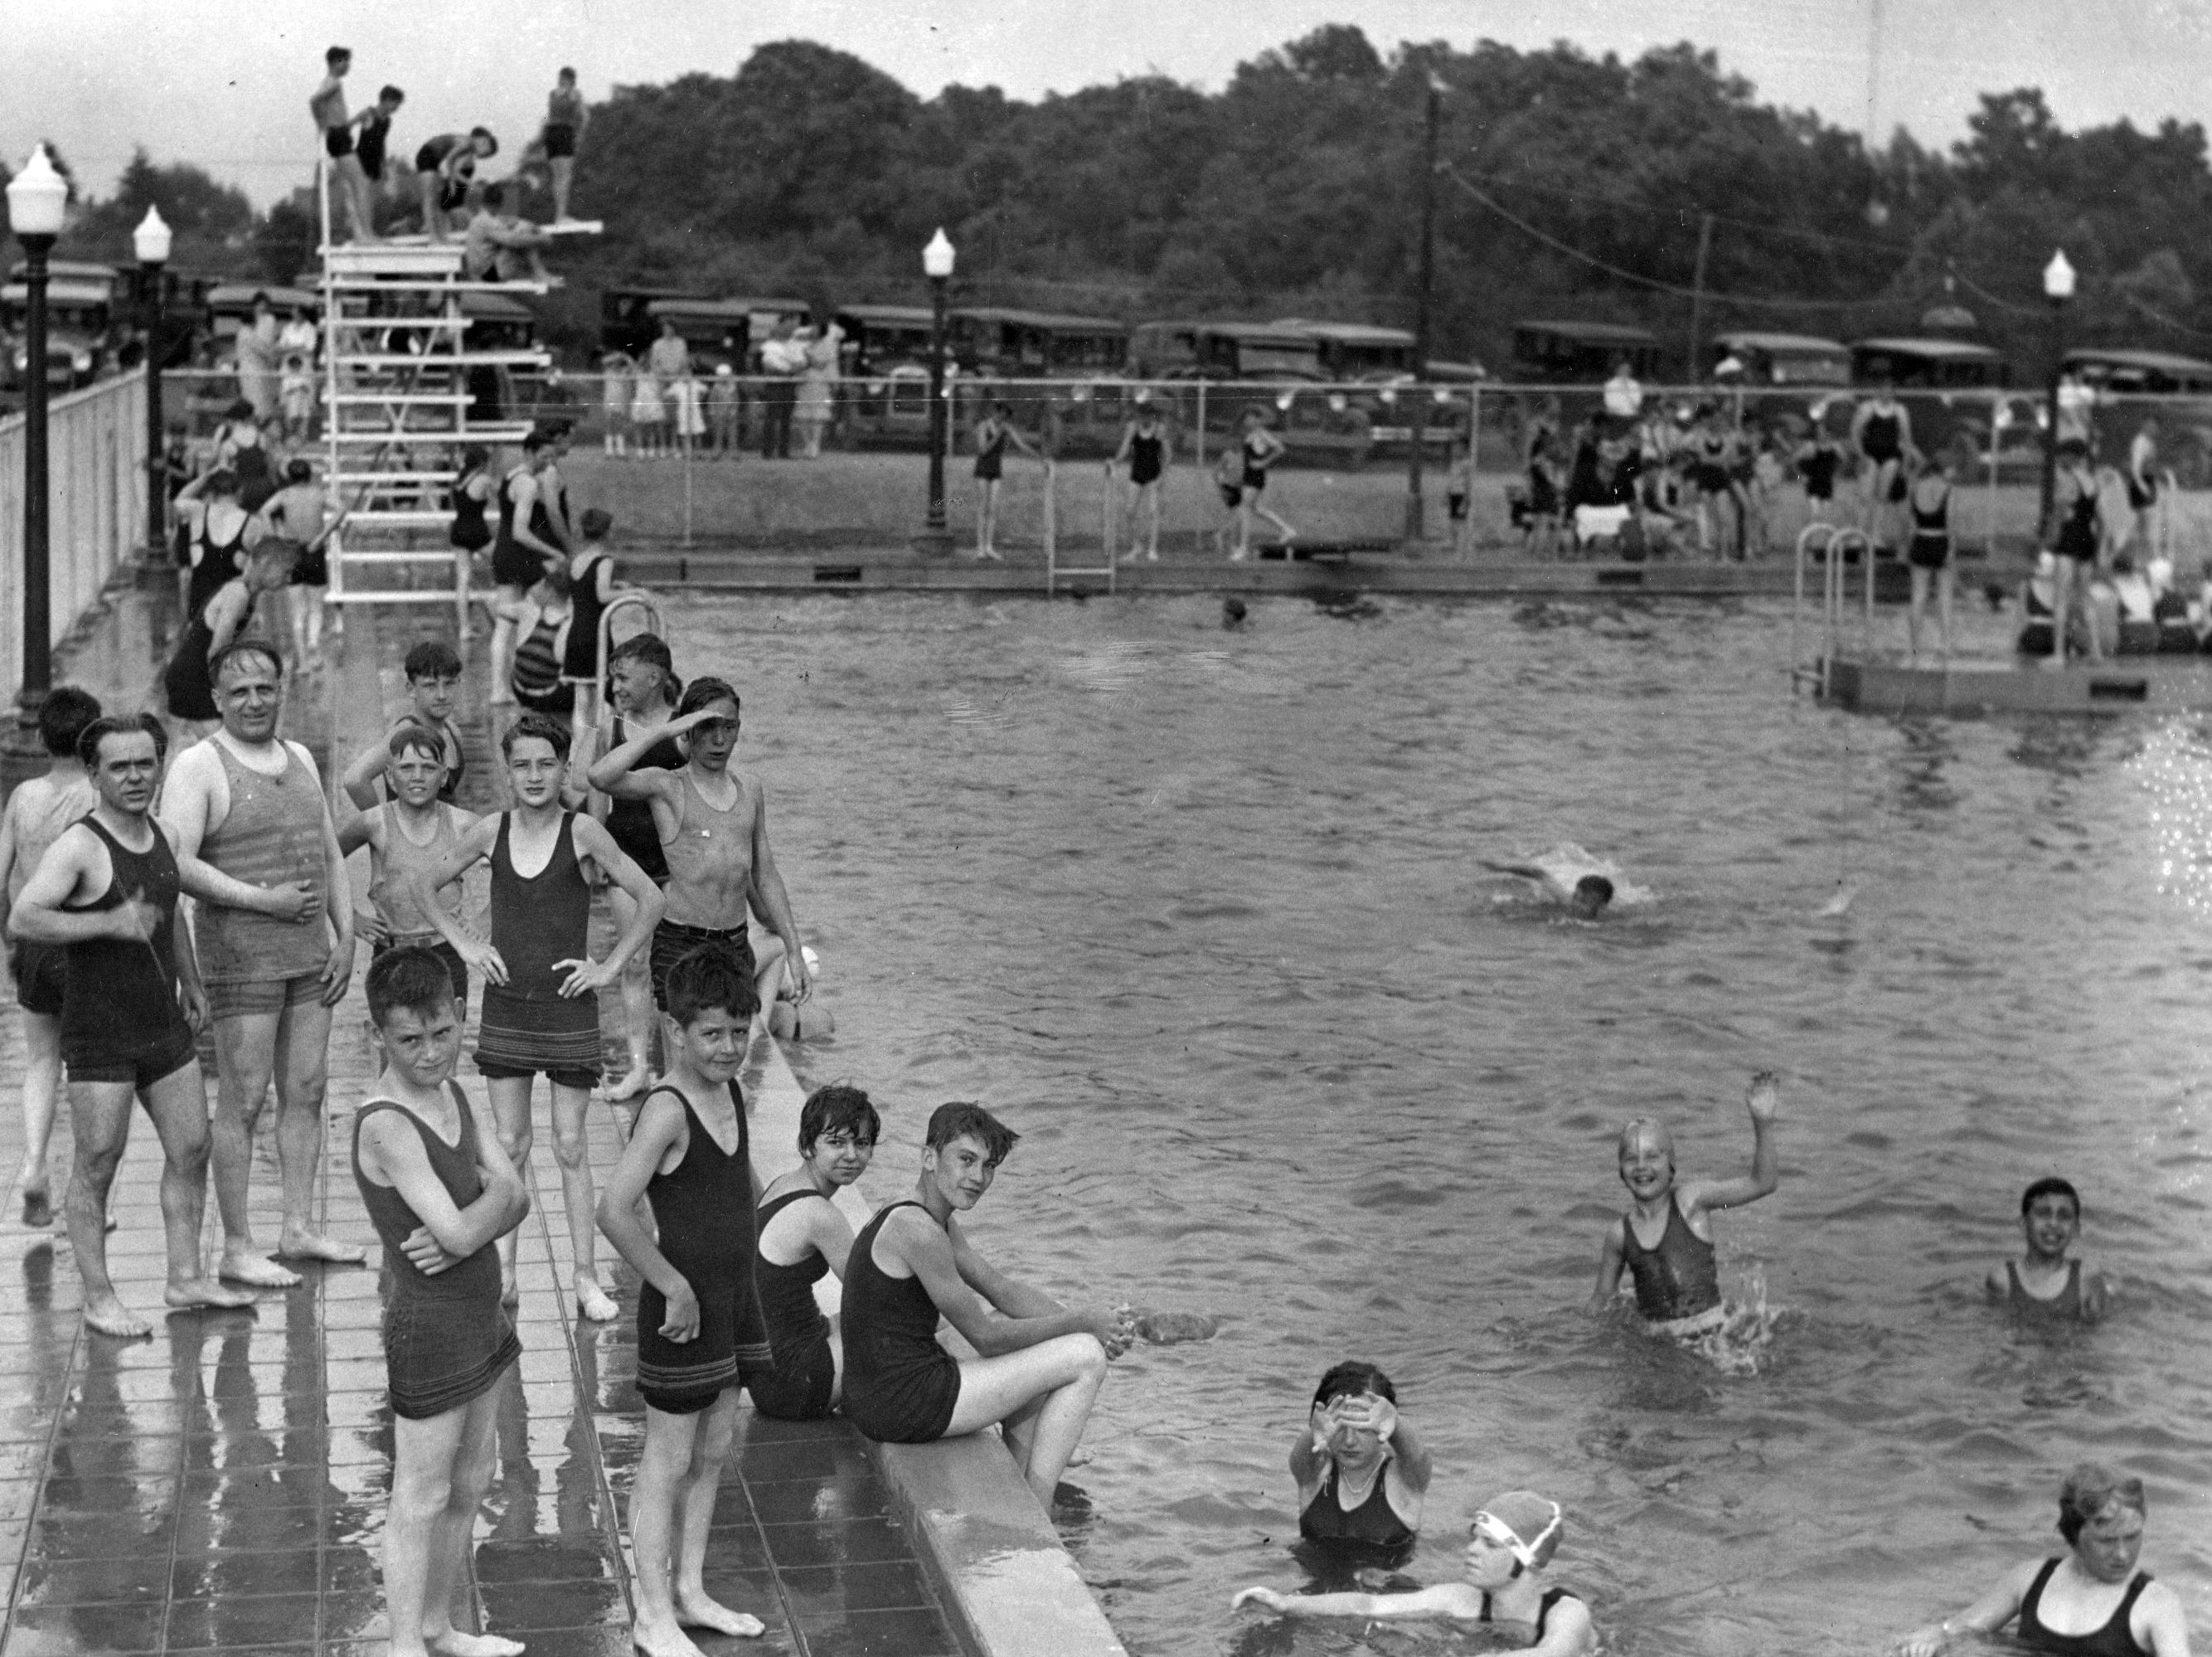 Ellenberger Park pool drew swimmers in 1929. Styles have changed, but swimming remains popular.